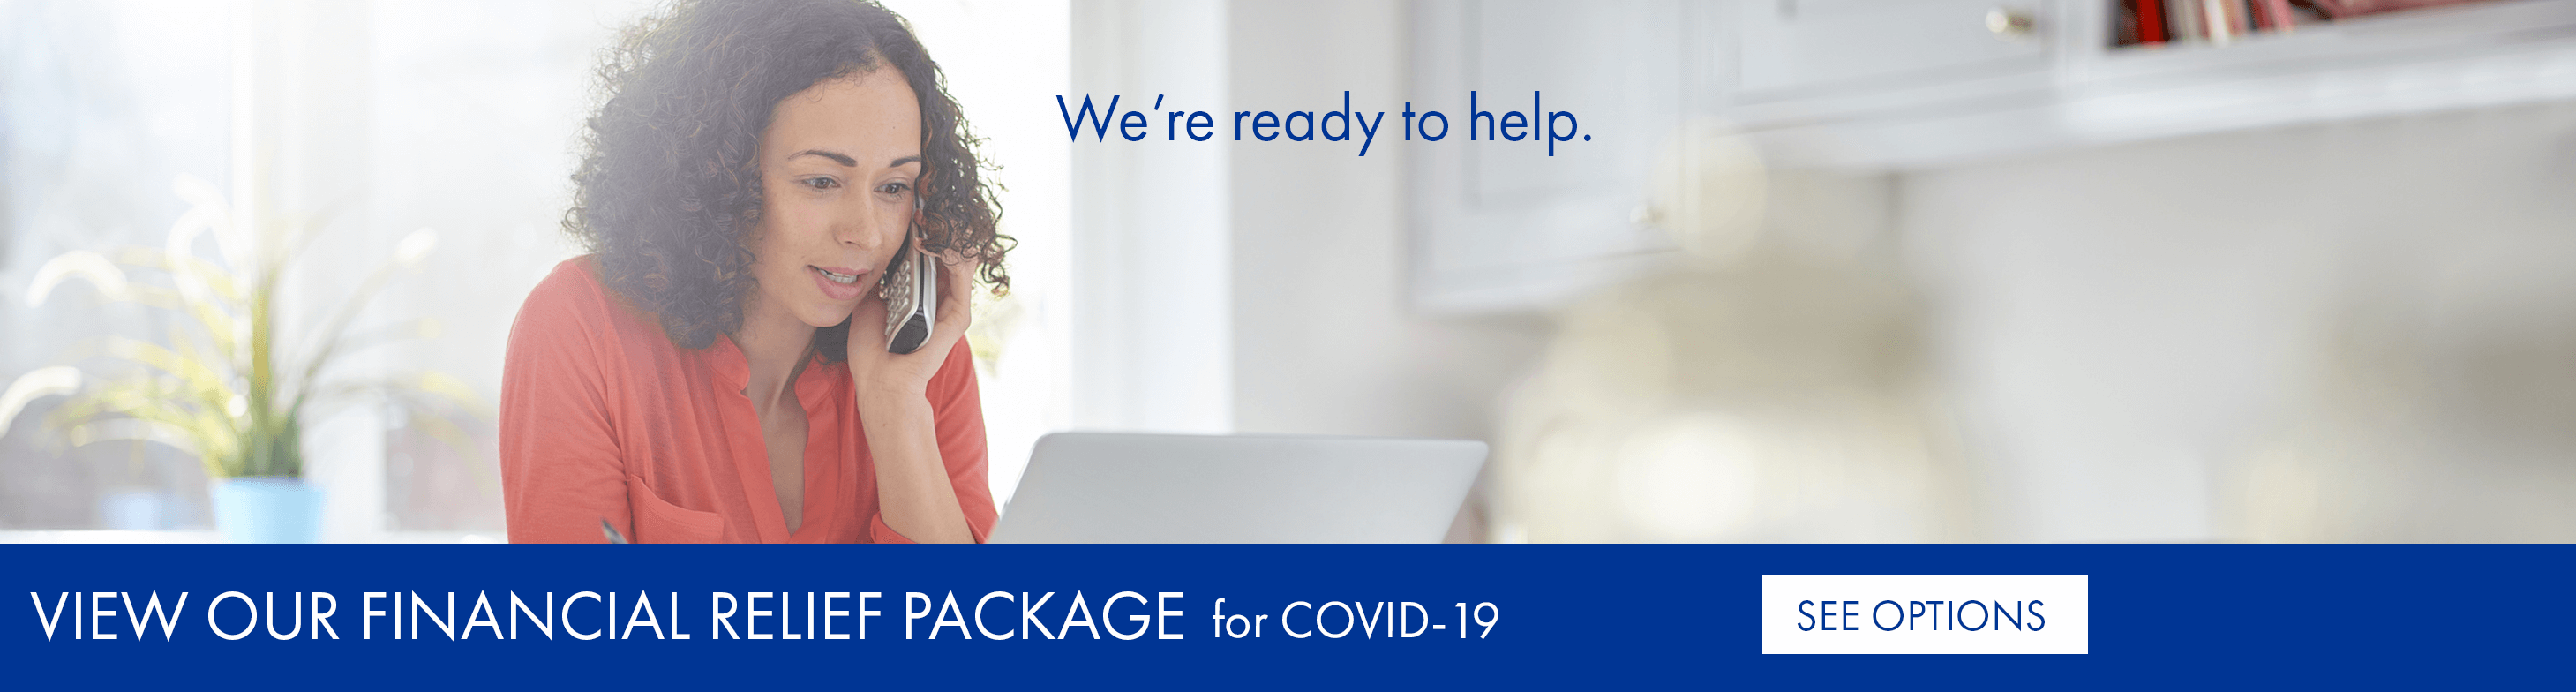 We're here to help. View our Financial Relief Package for COVID-19.